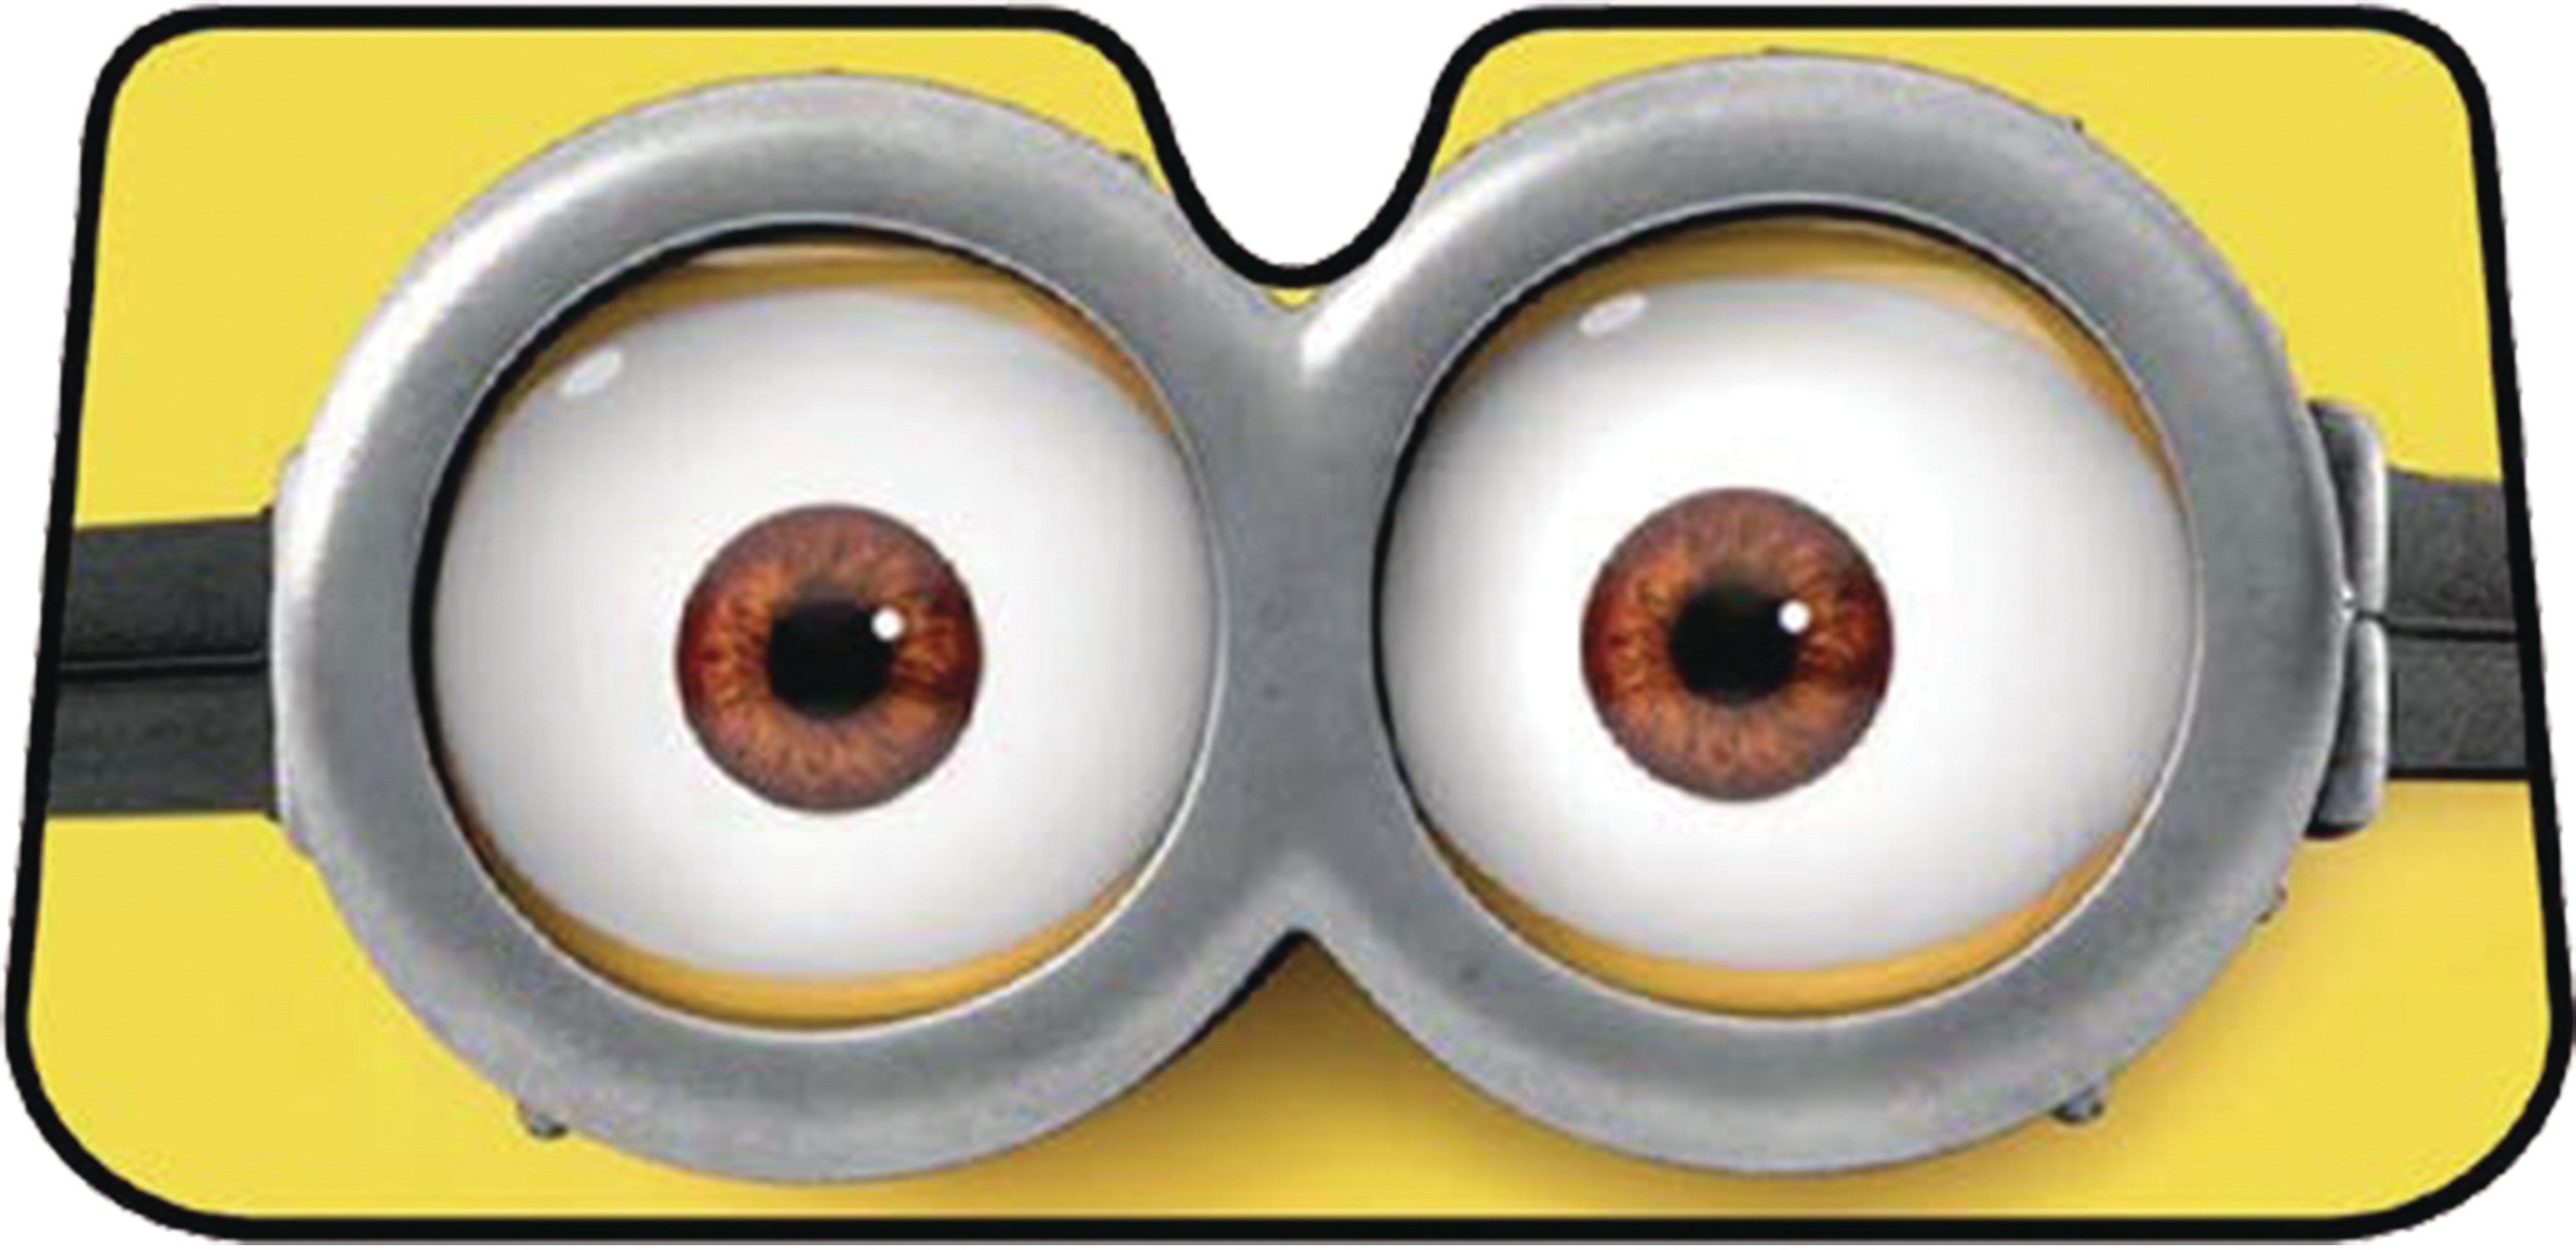 feb173151 minions eyes accordion auto sunshade previews world. Black Bedroom Furniture Sets. Home Design Ideas